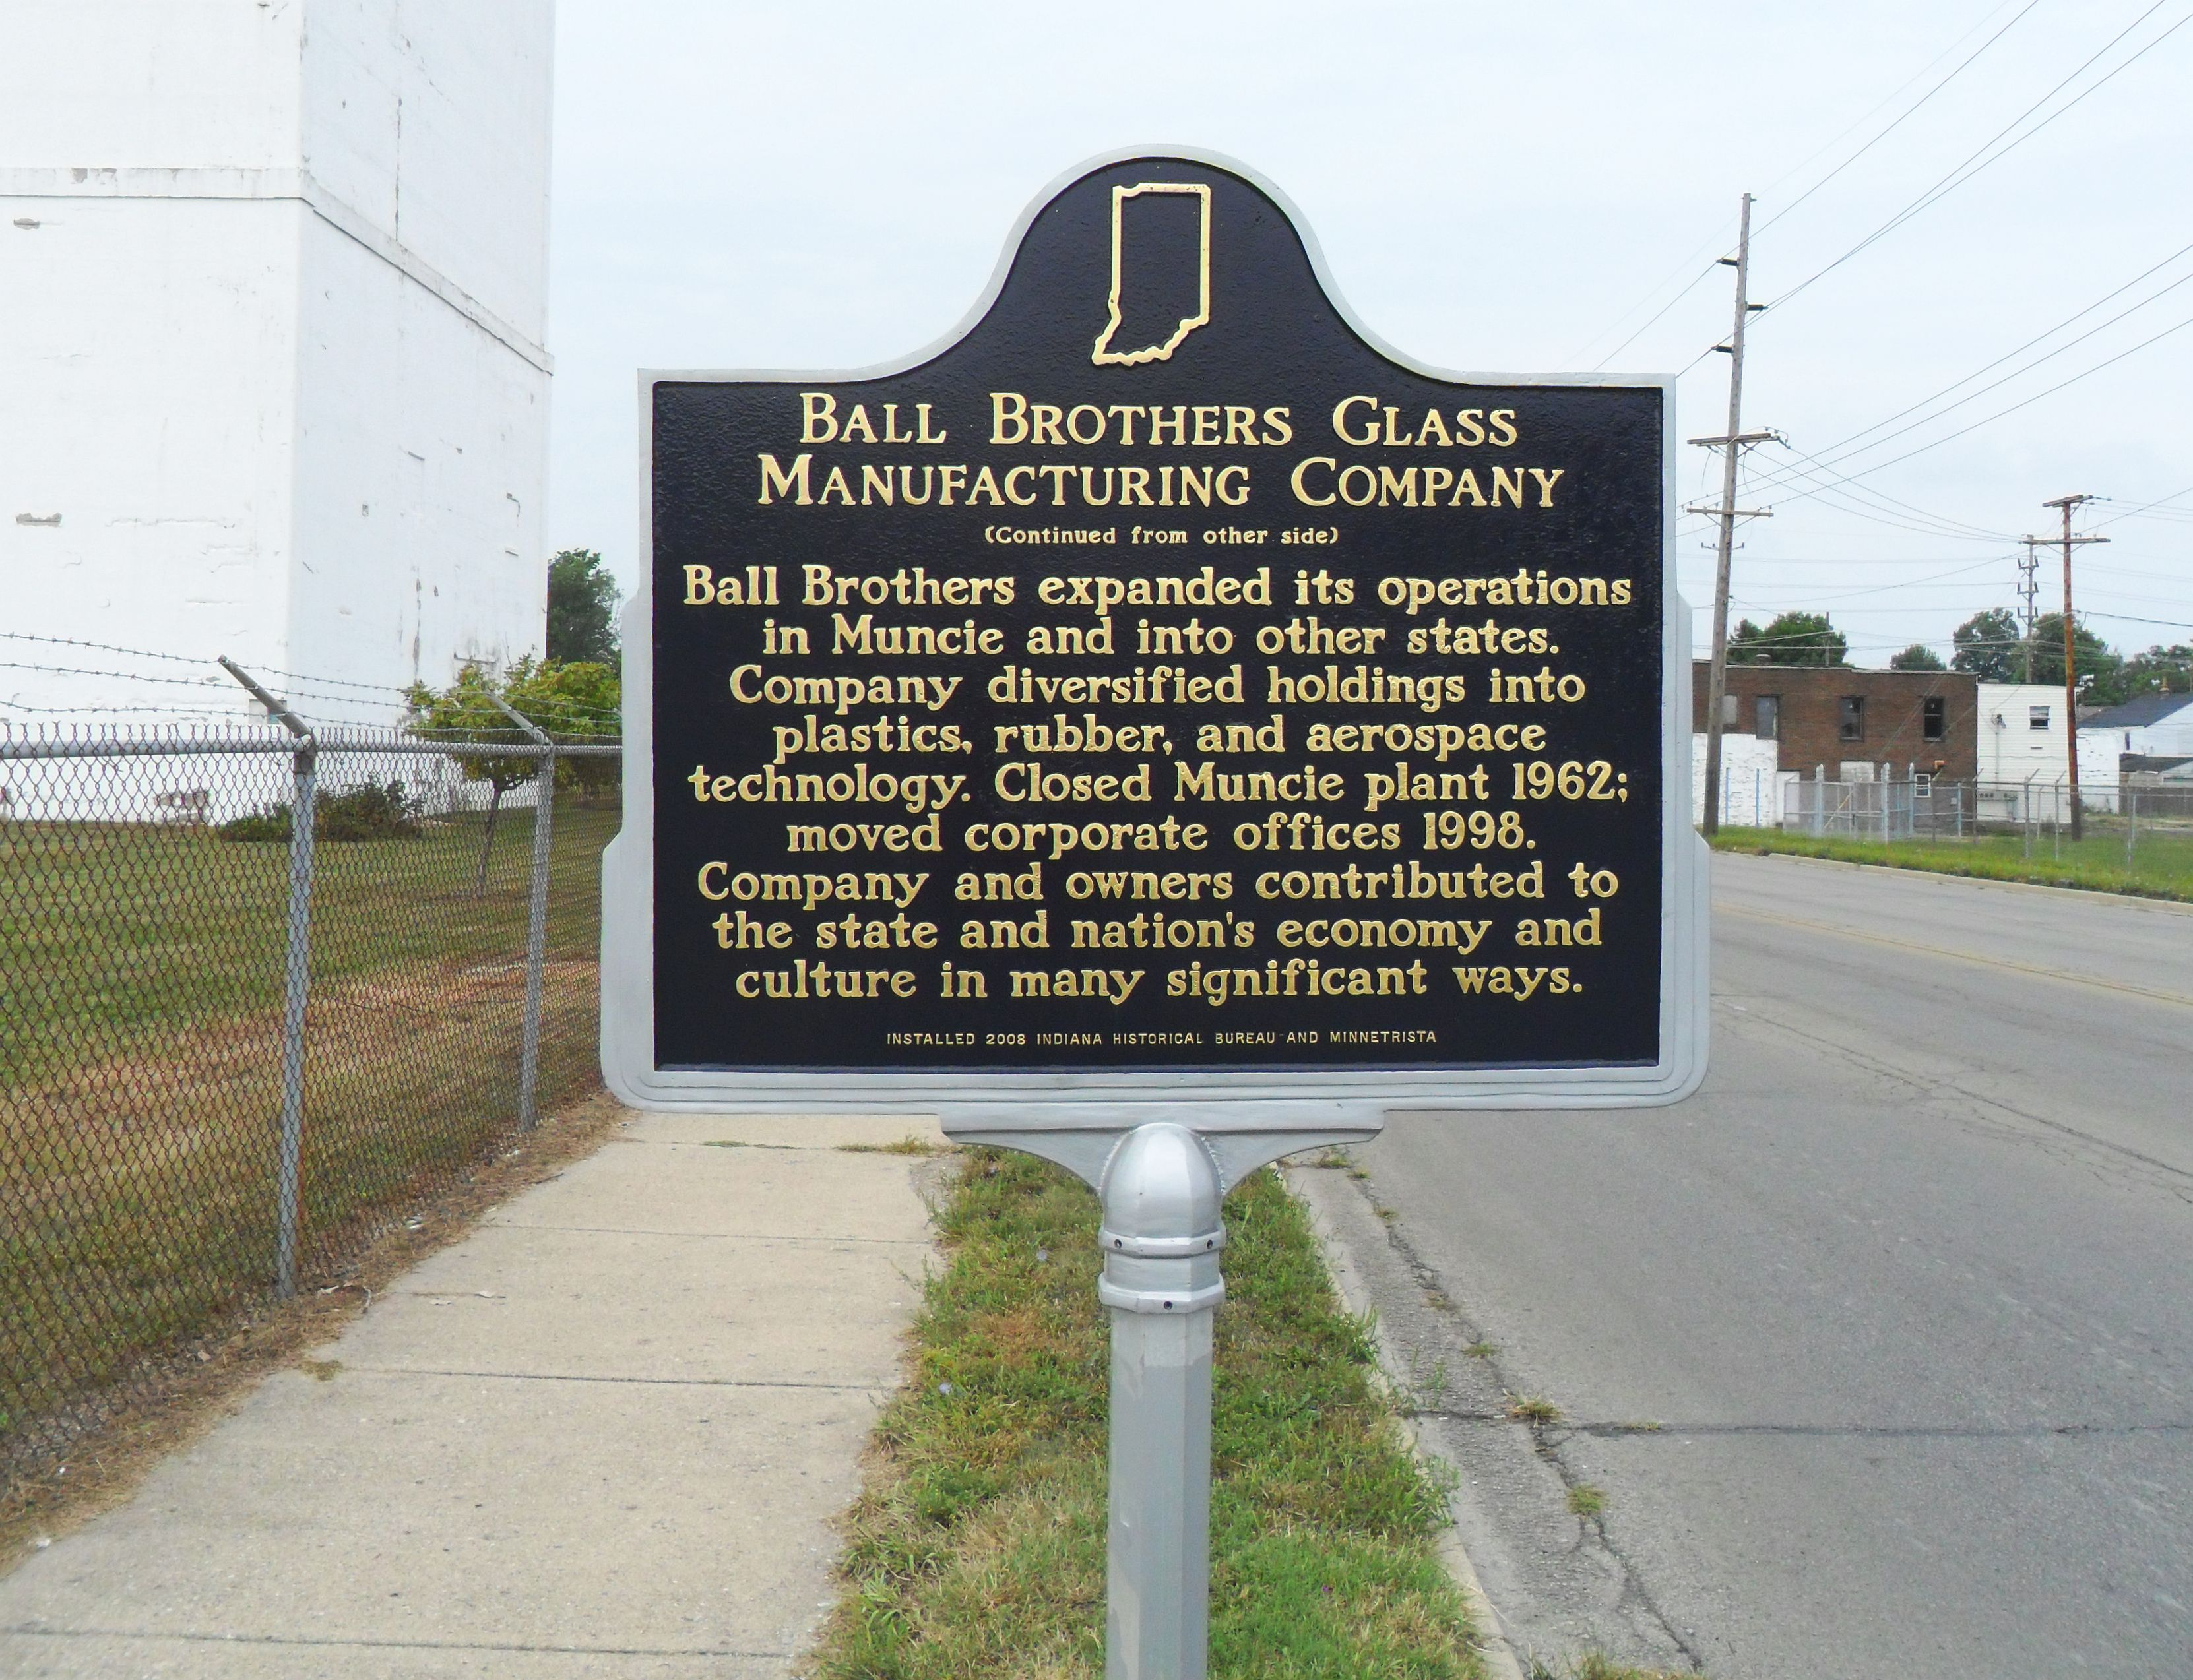 Ball Brothers Glass Manufacturing Company